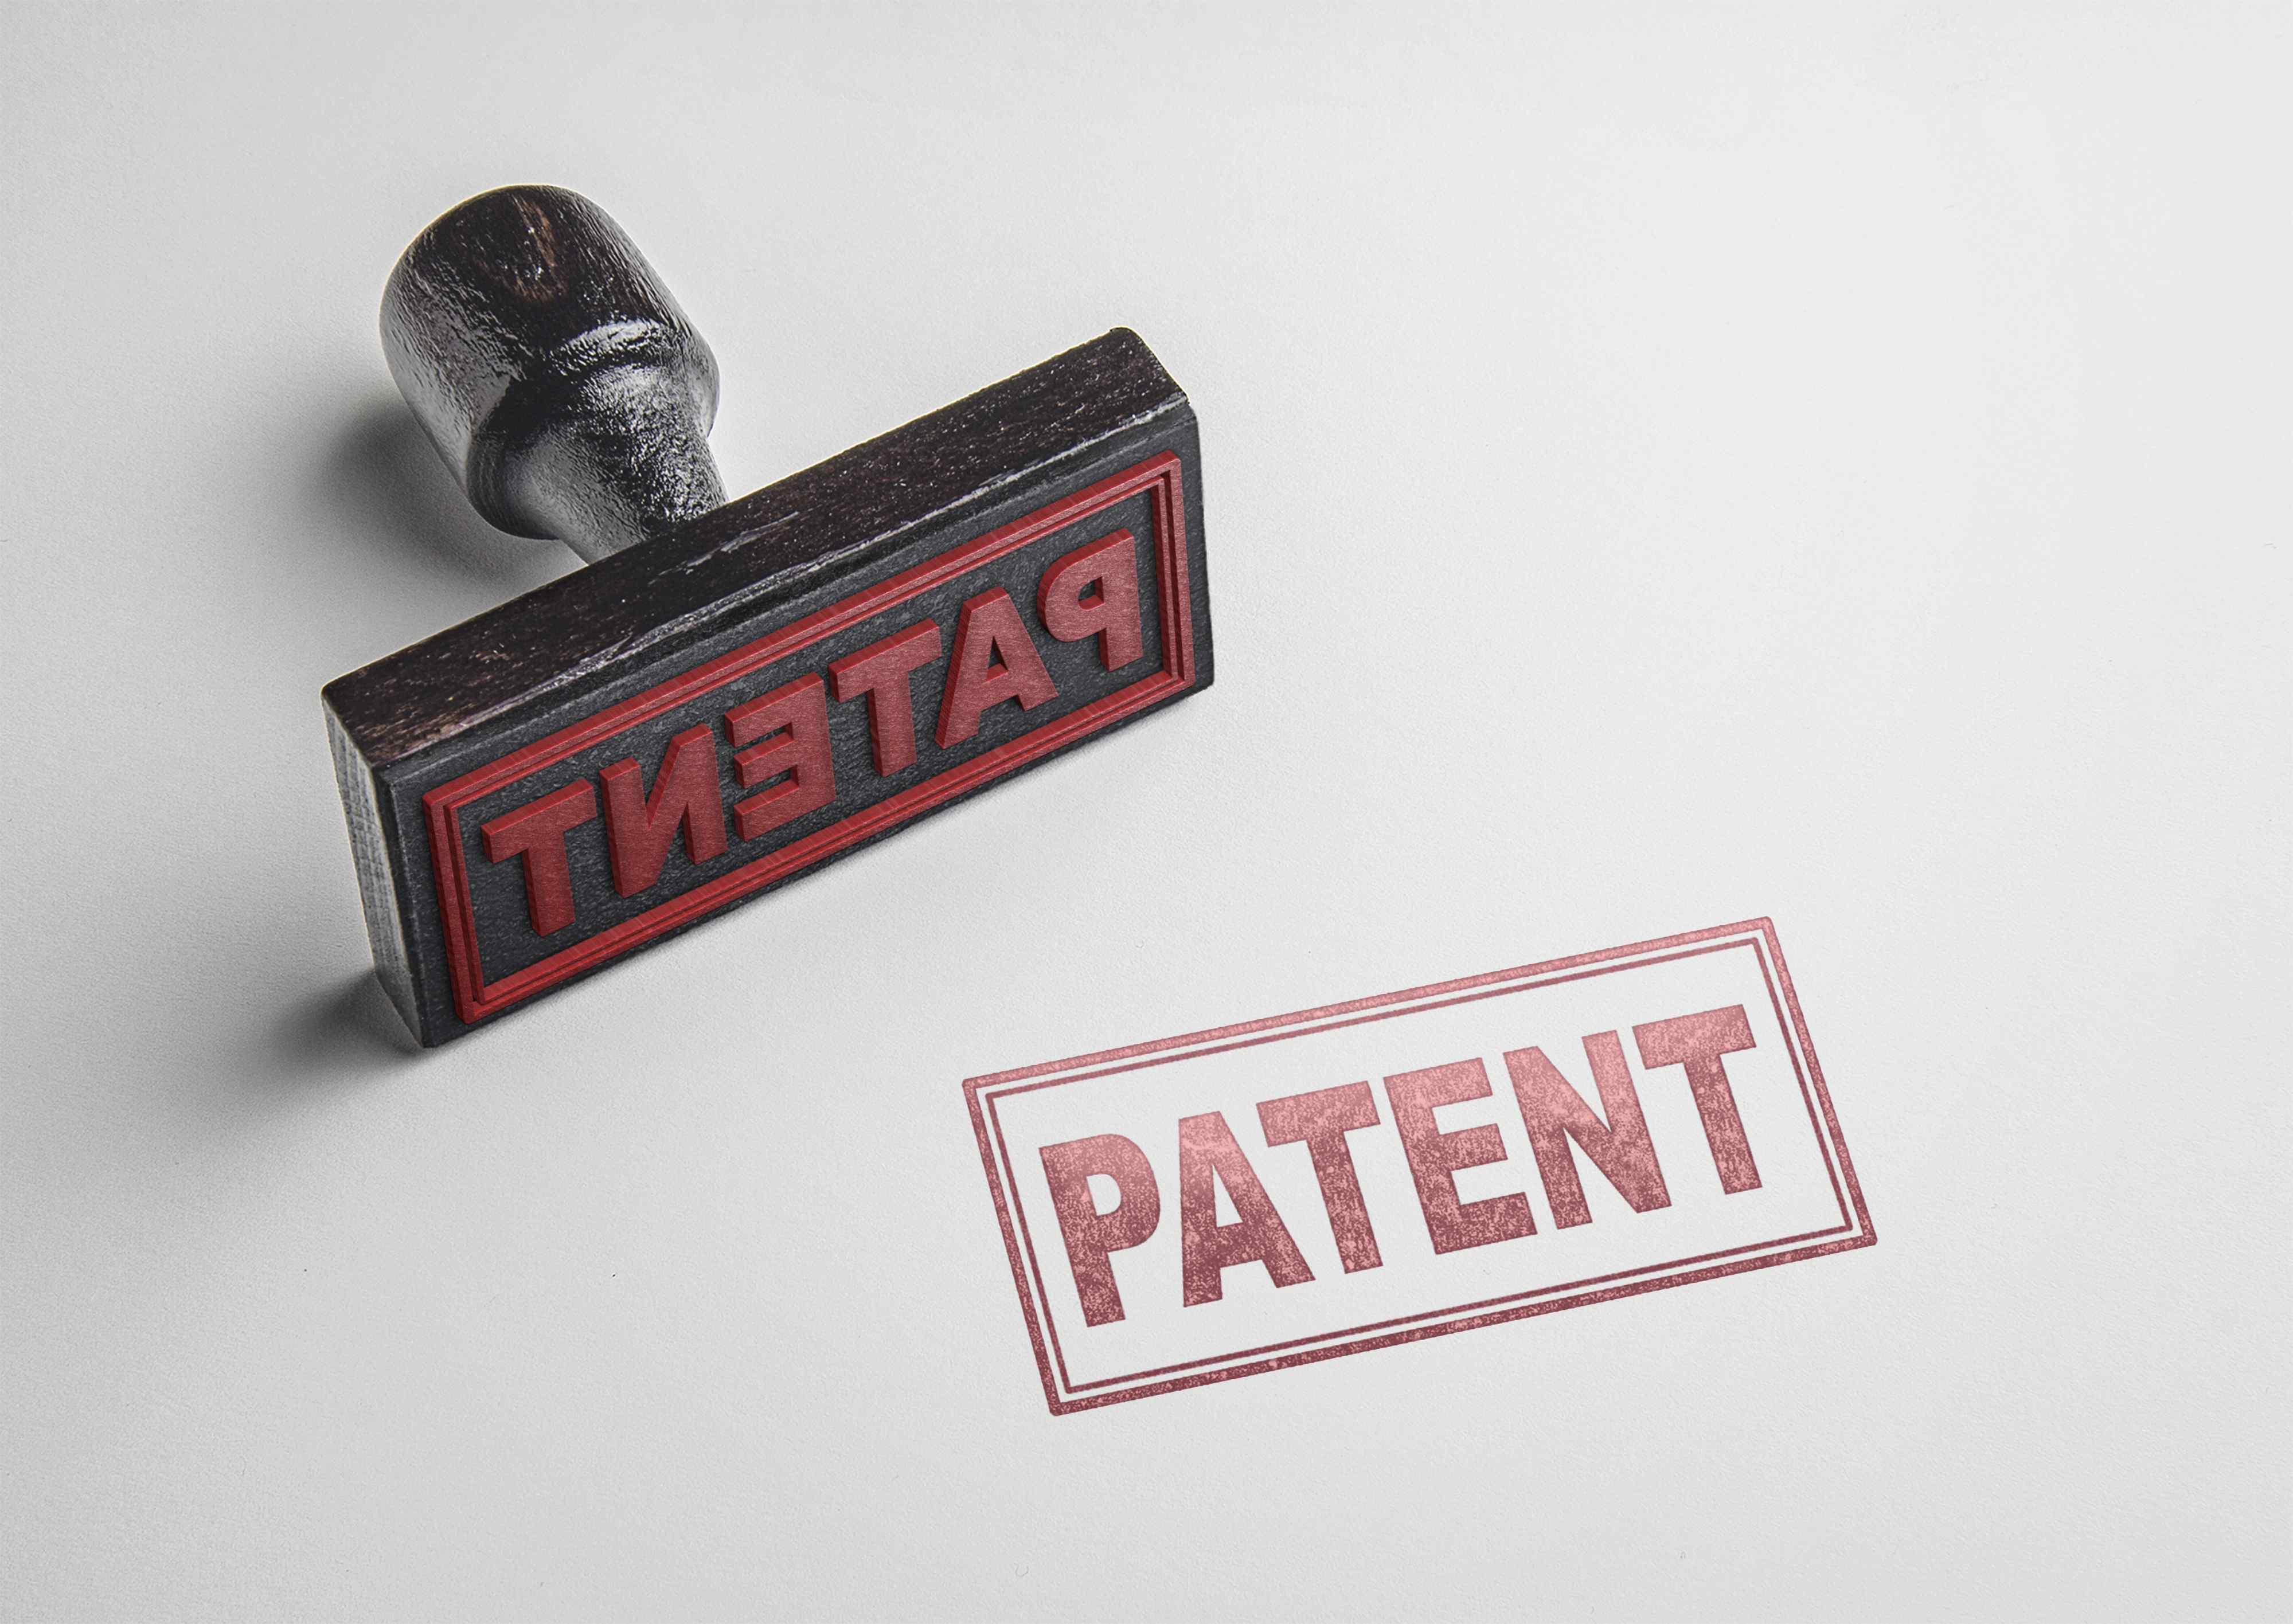 US patent granted for Tumorad®